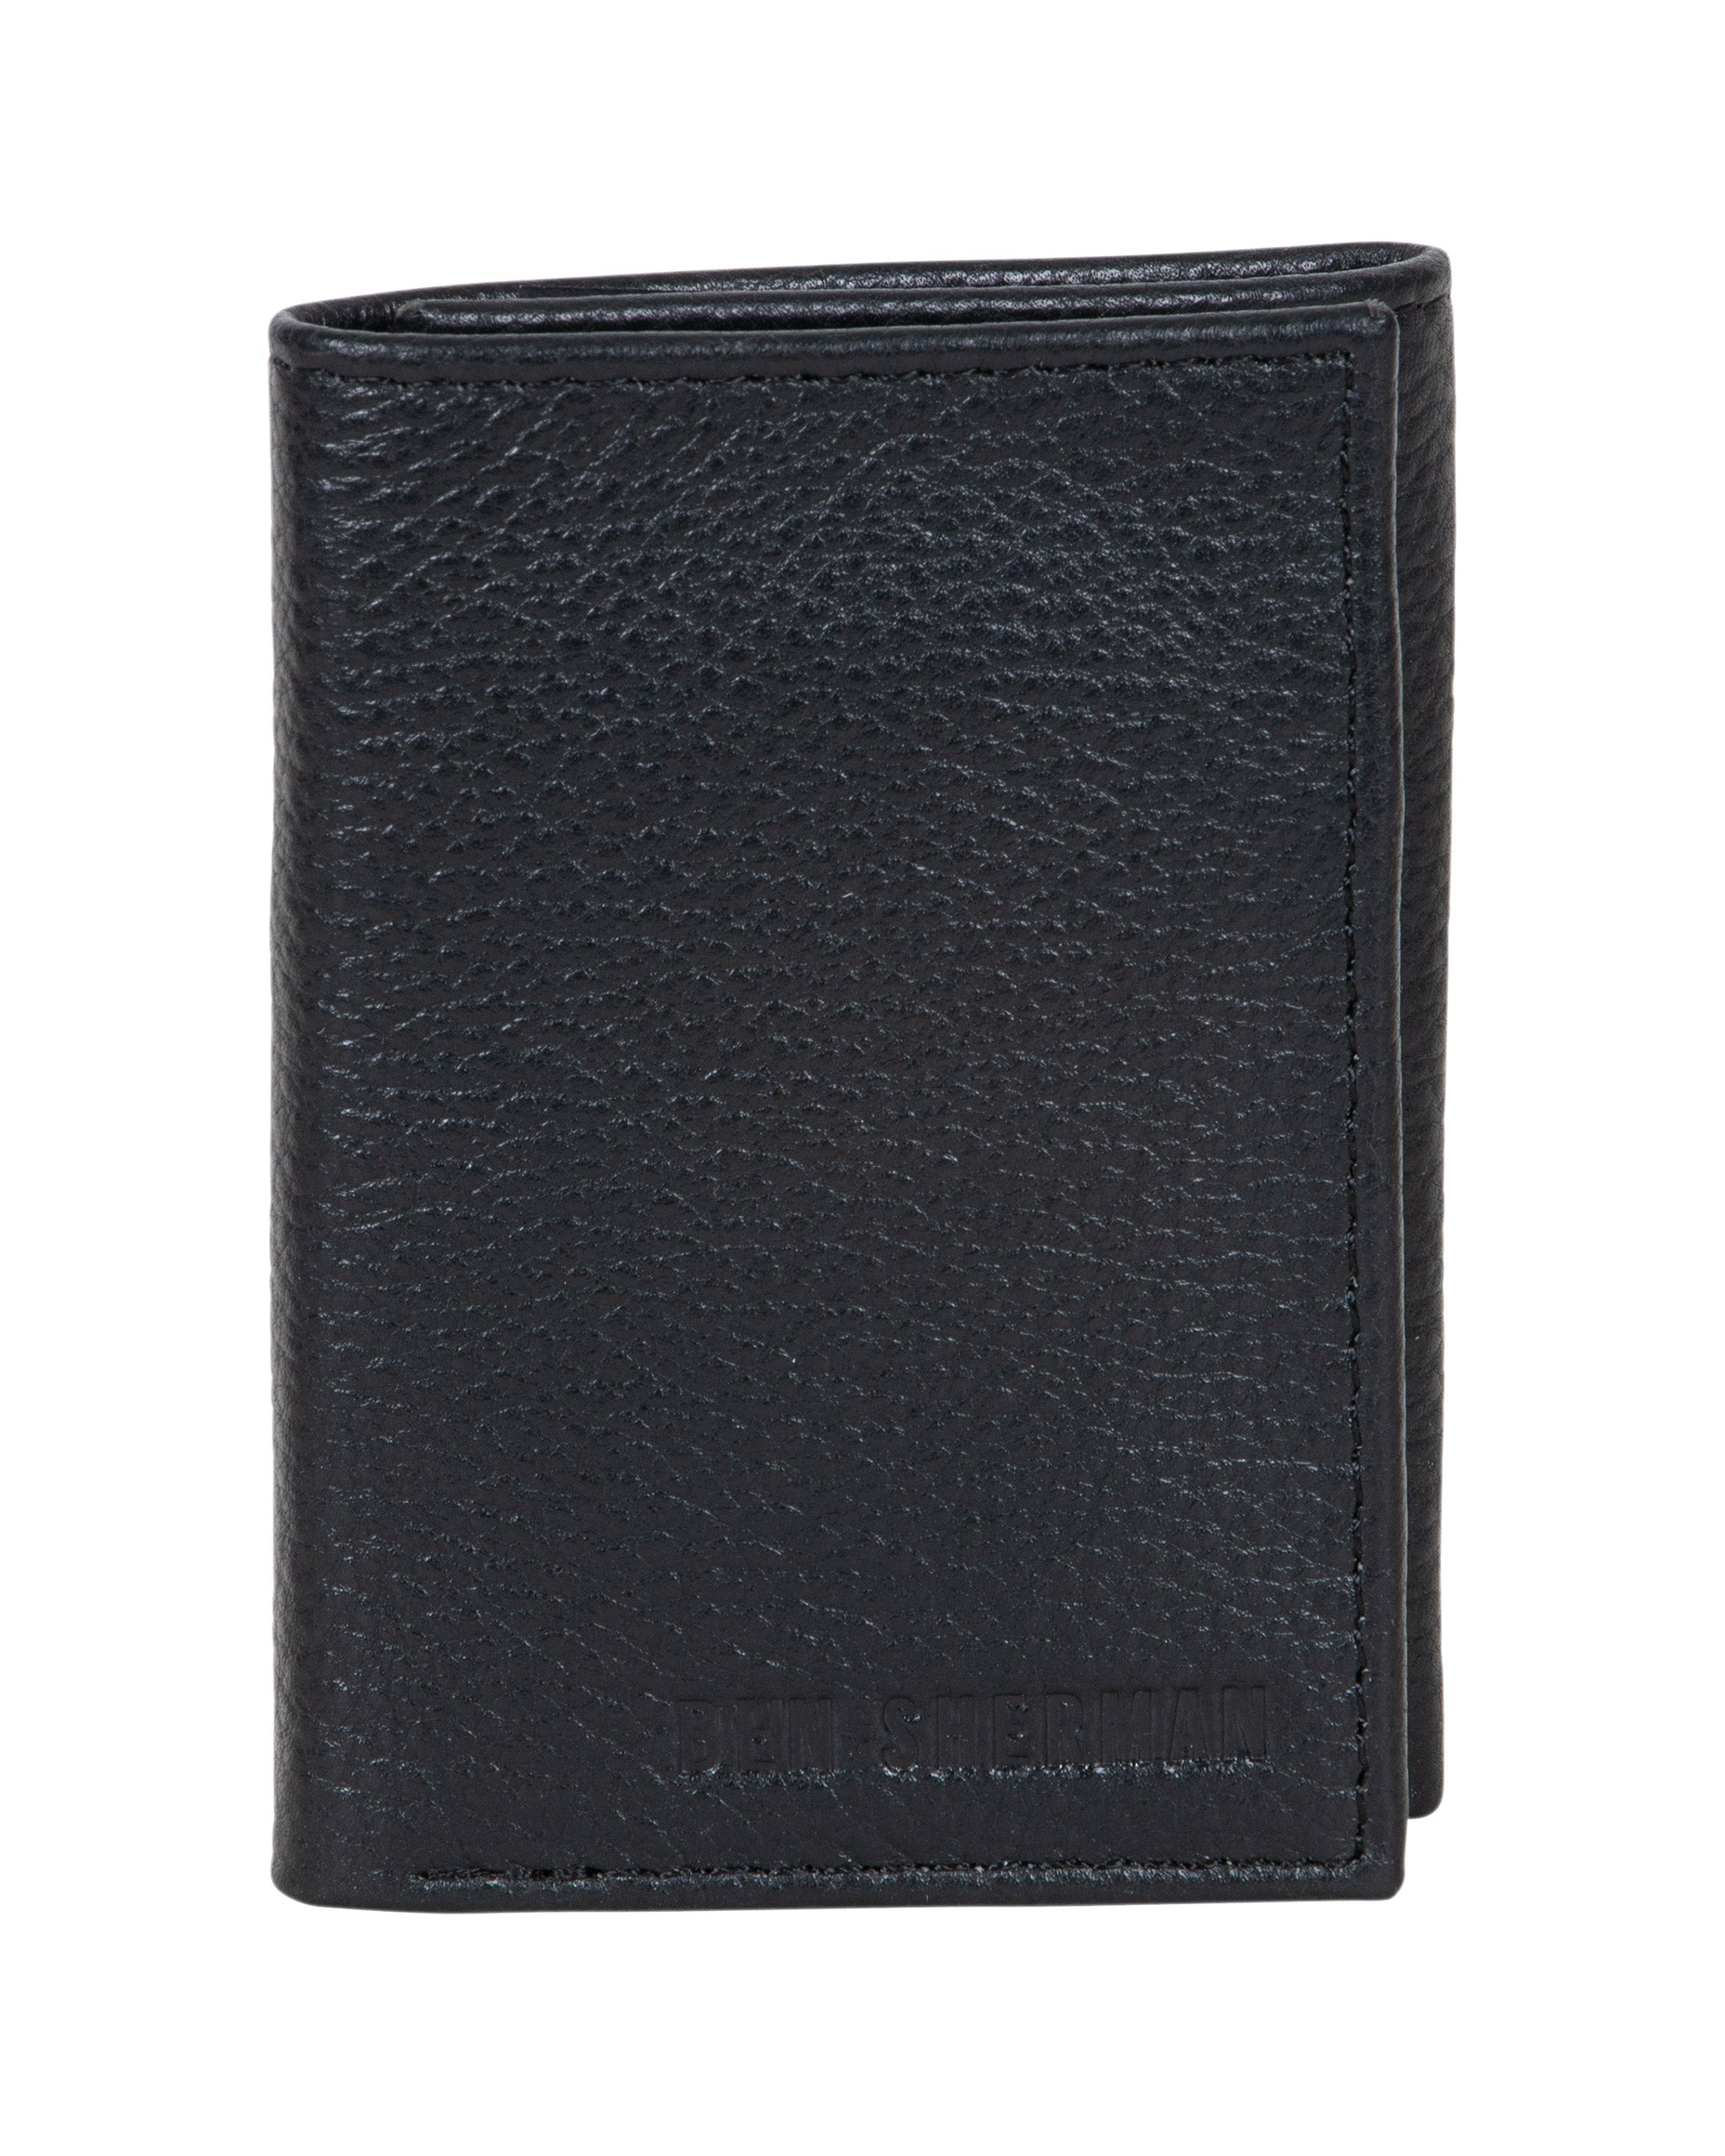 Brentford Full Grain Leather Trifold Wallet - Black